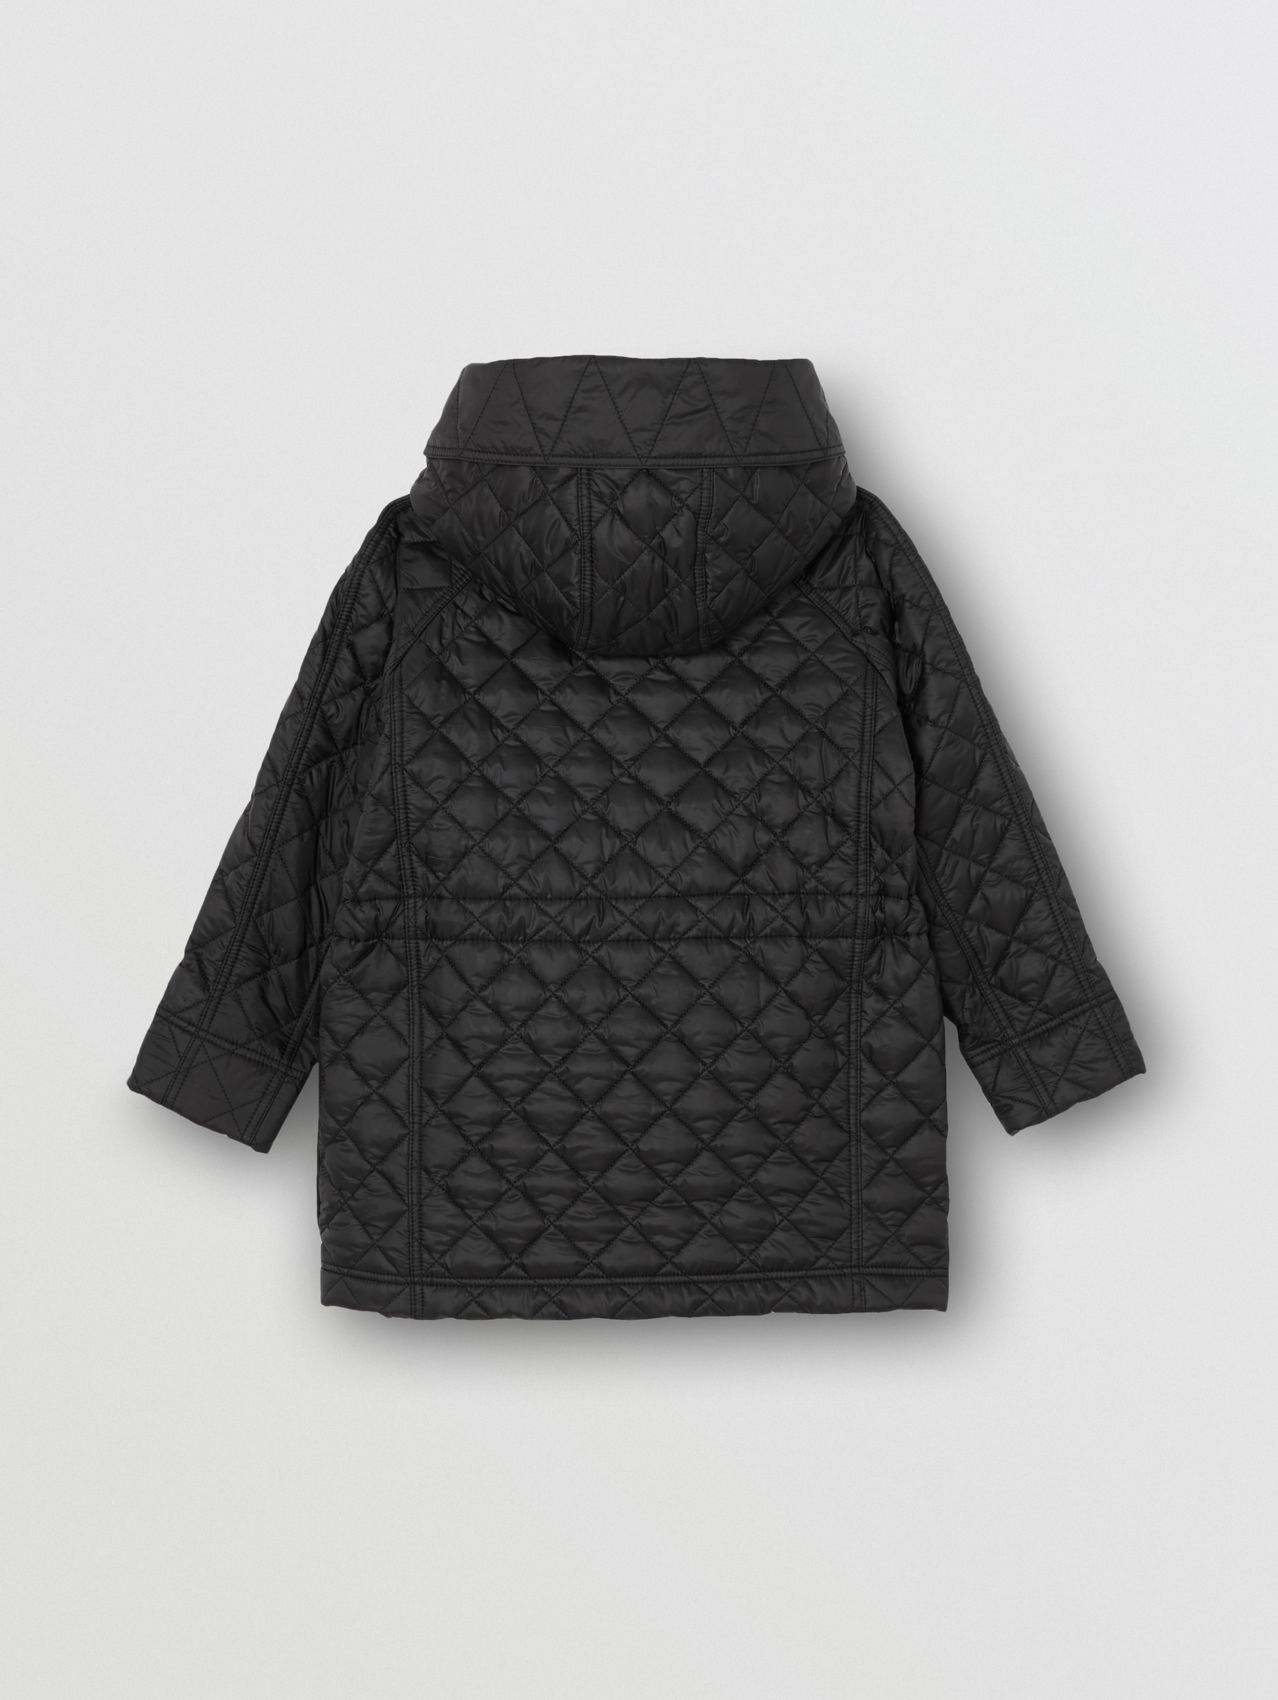 Diamond Quilted Hooded Coat in Black